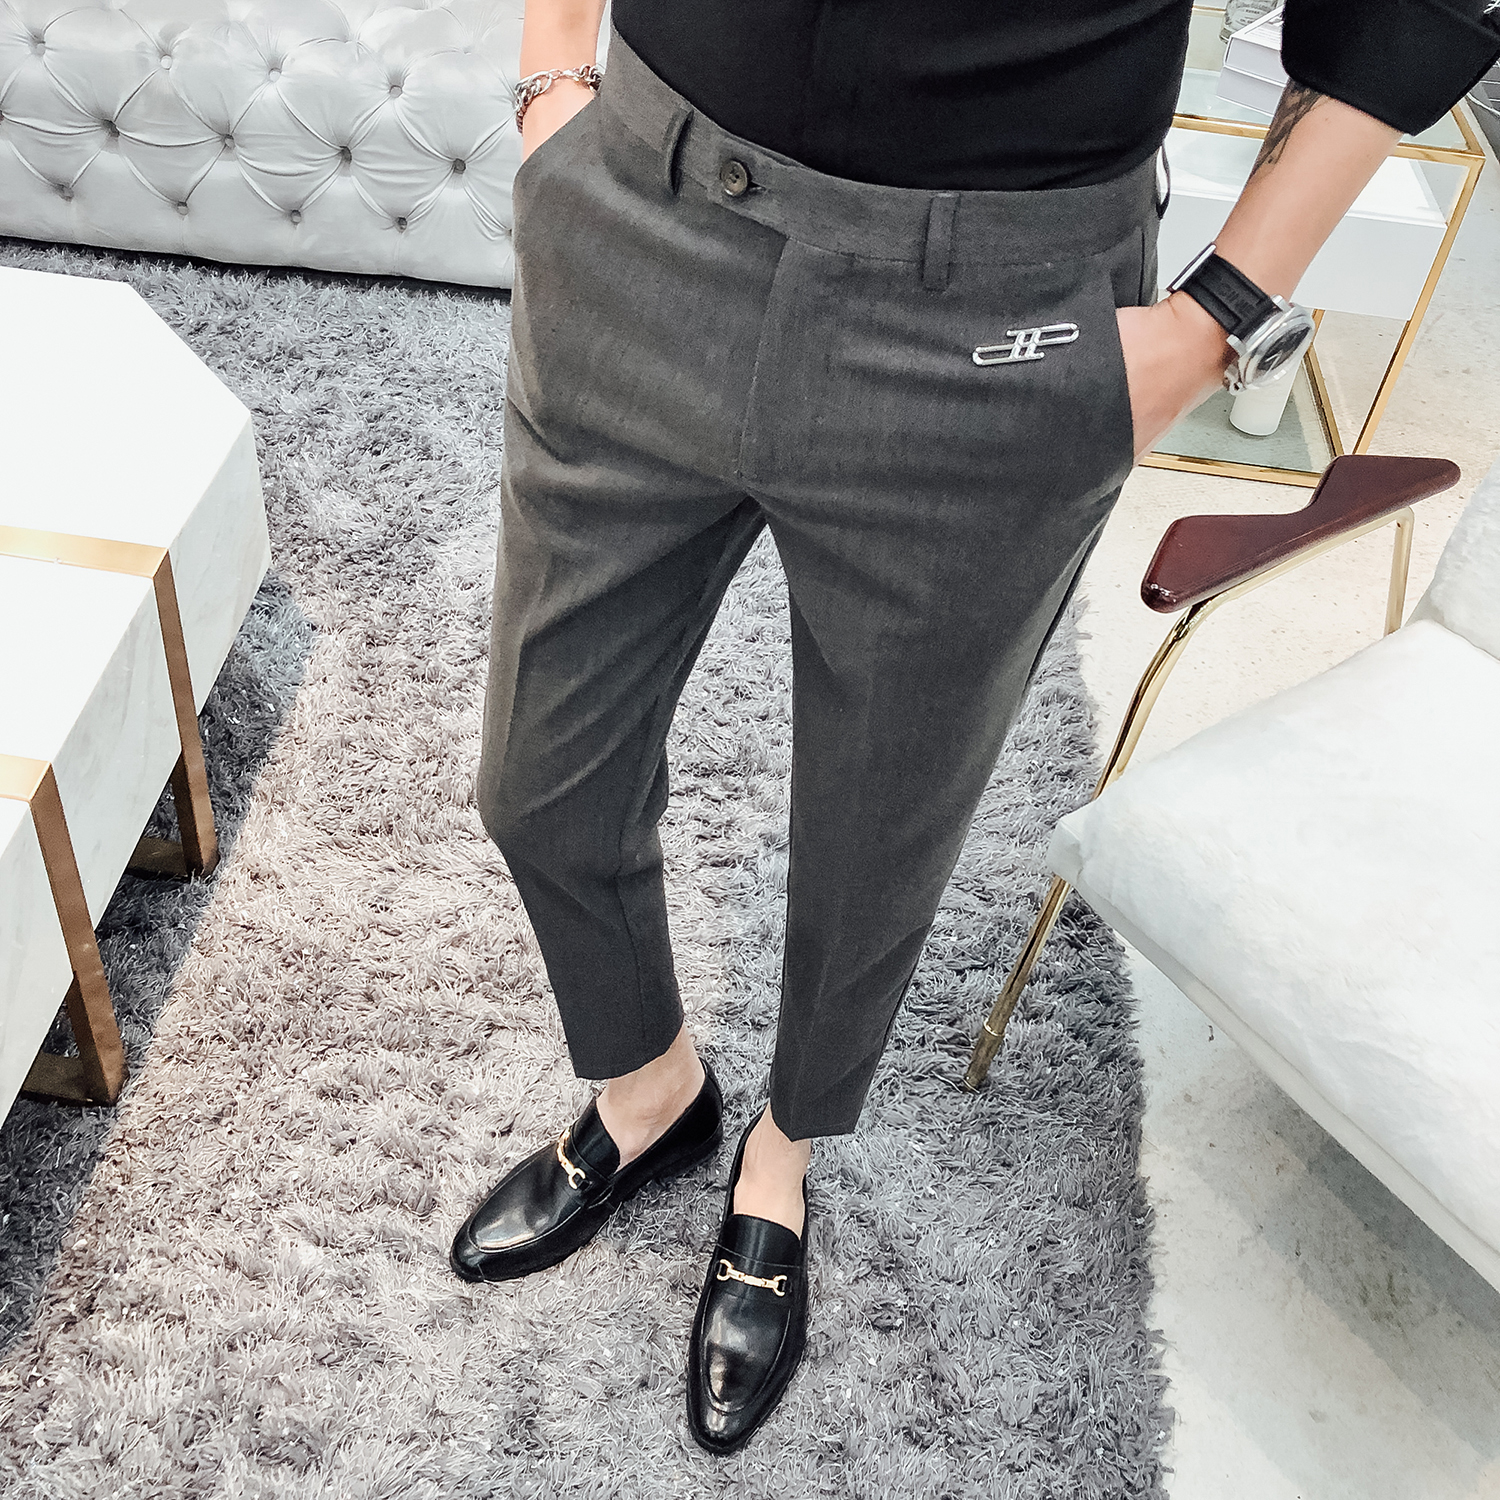 2020 Man Slim Suit Pants Casual Business Trousers Fashion Men Formal Wedding Dress Pants Street Wear Male Clothing Black Gray